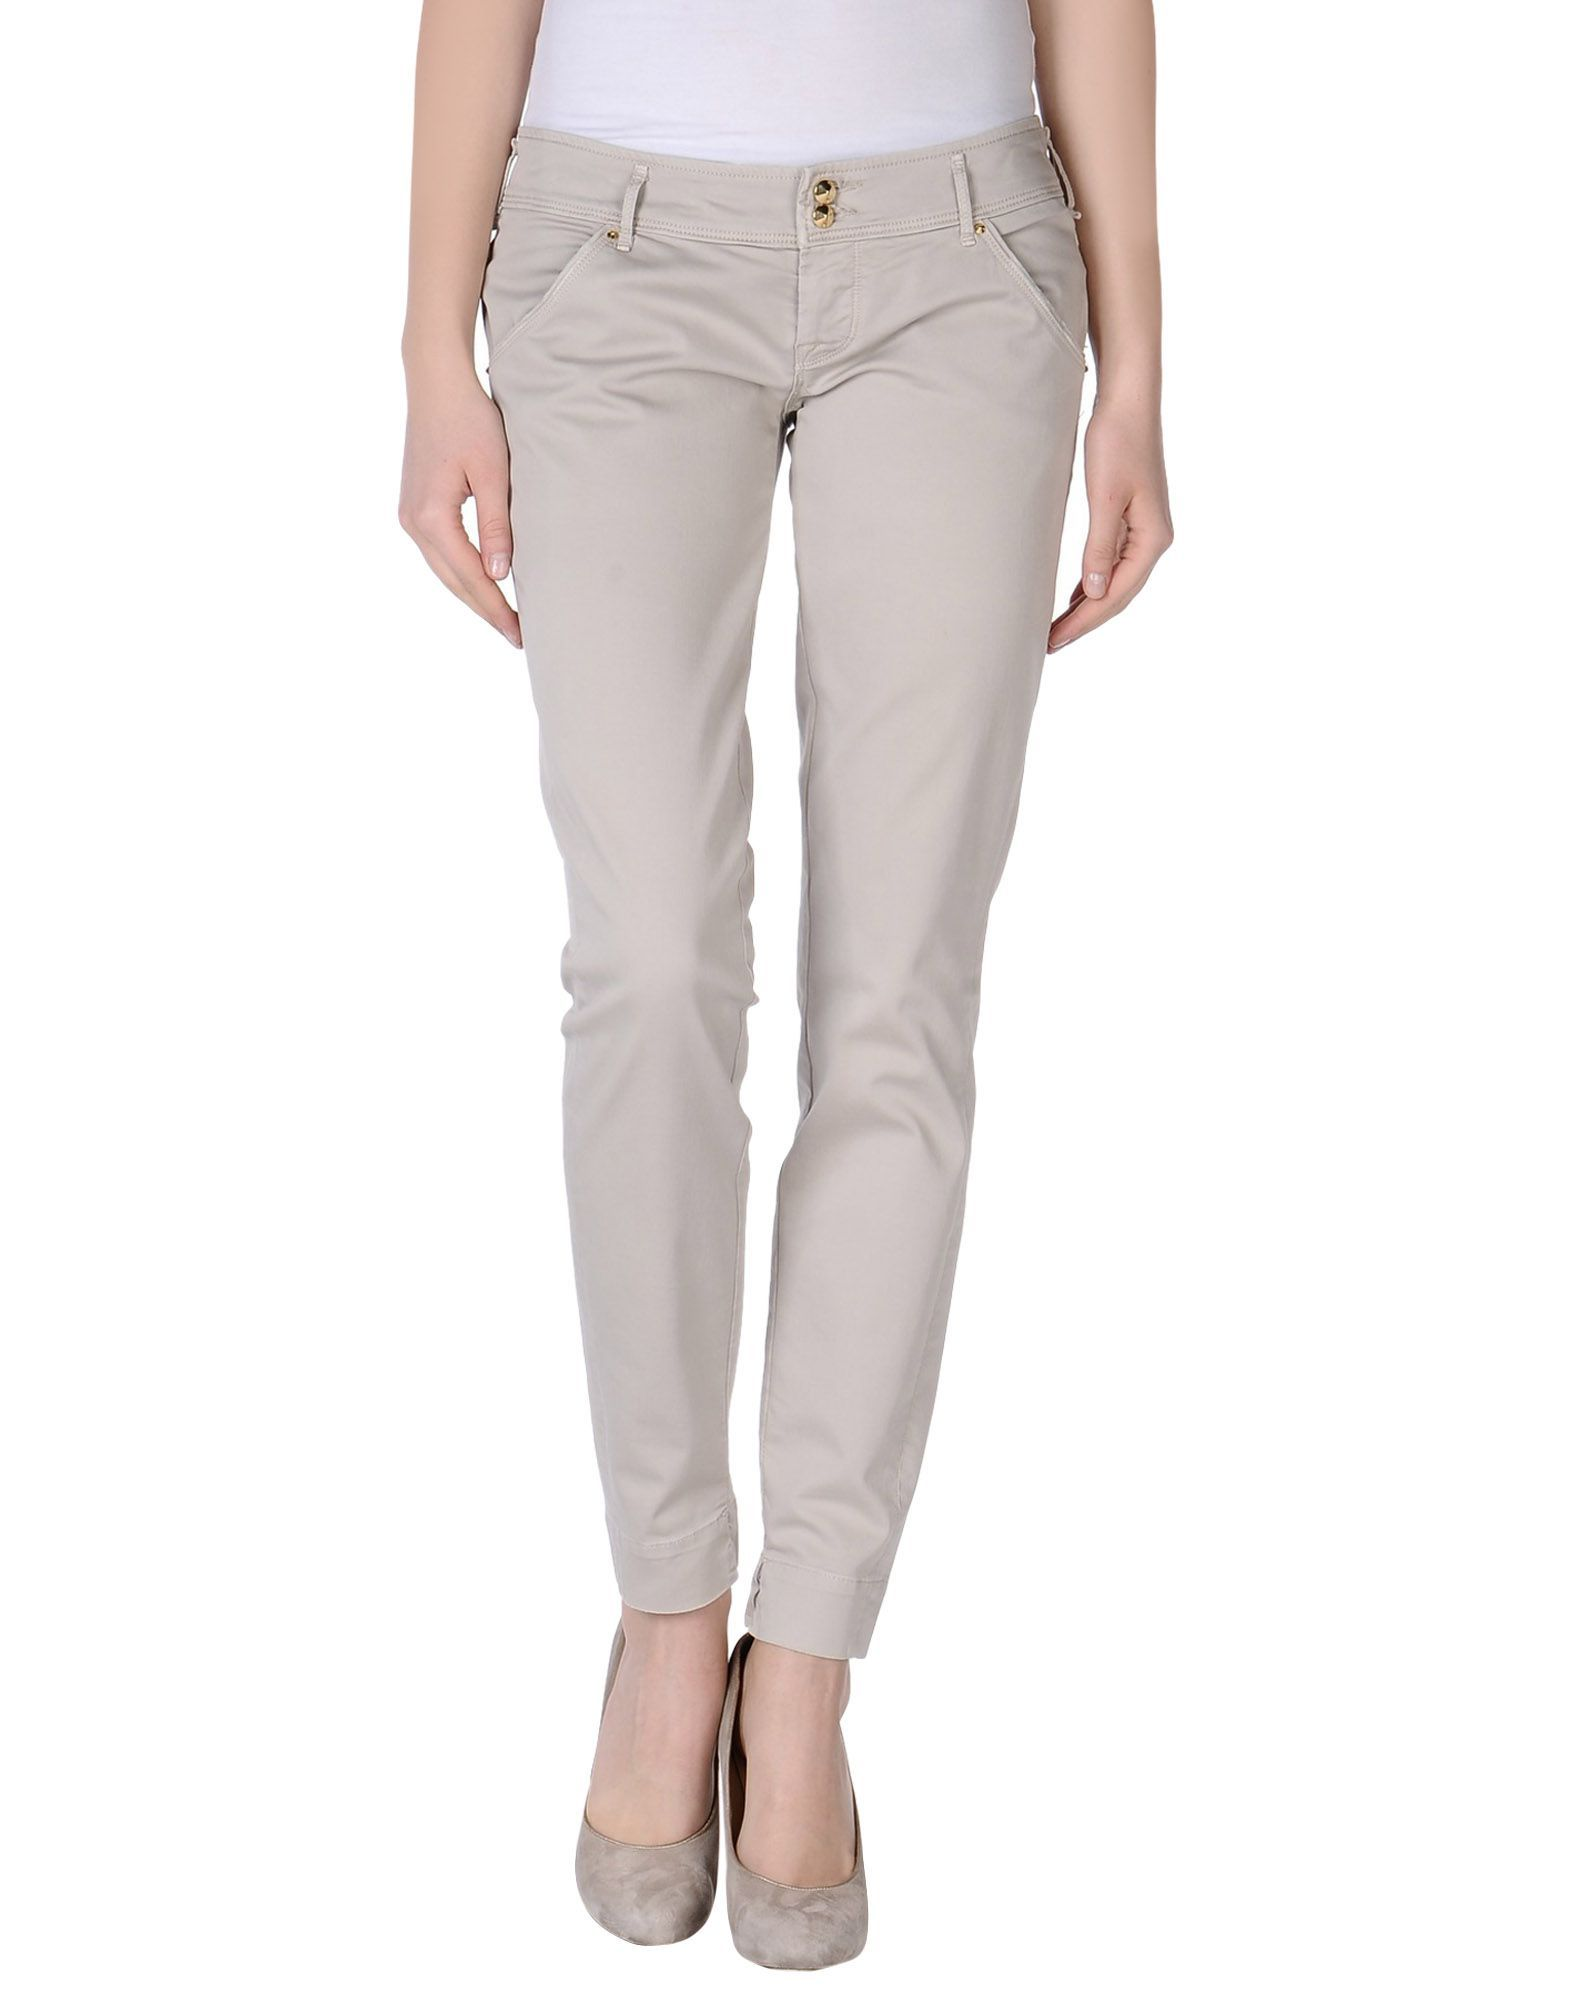 Cycle Light Grey Cotton Trousers